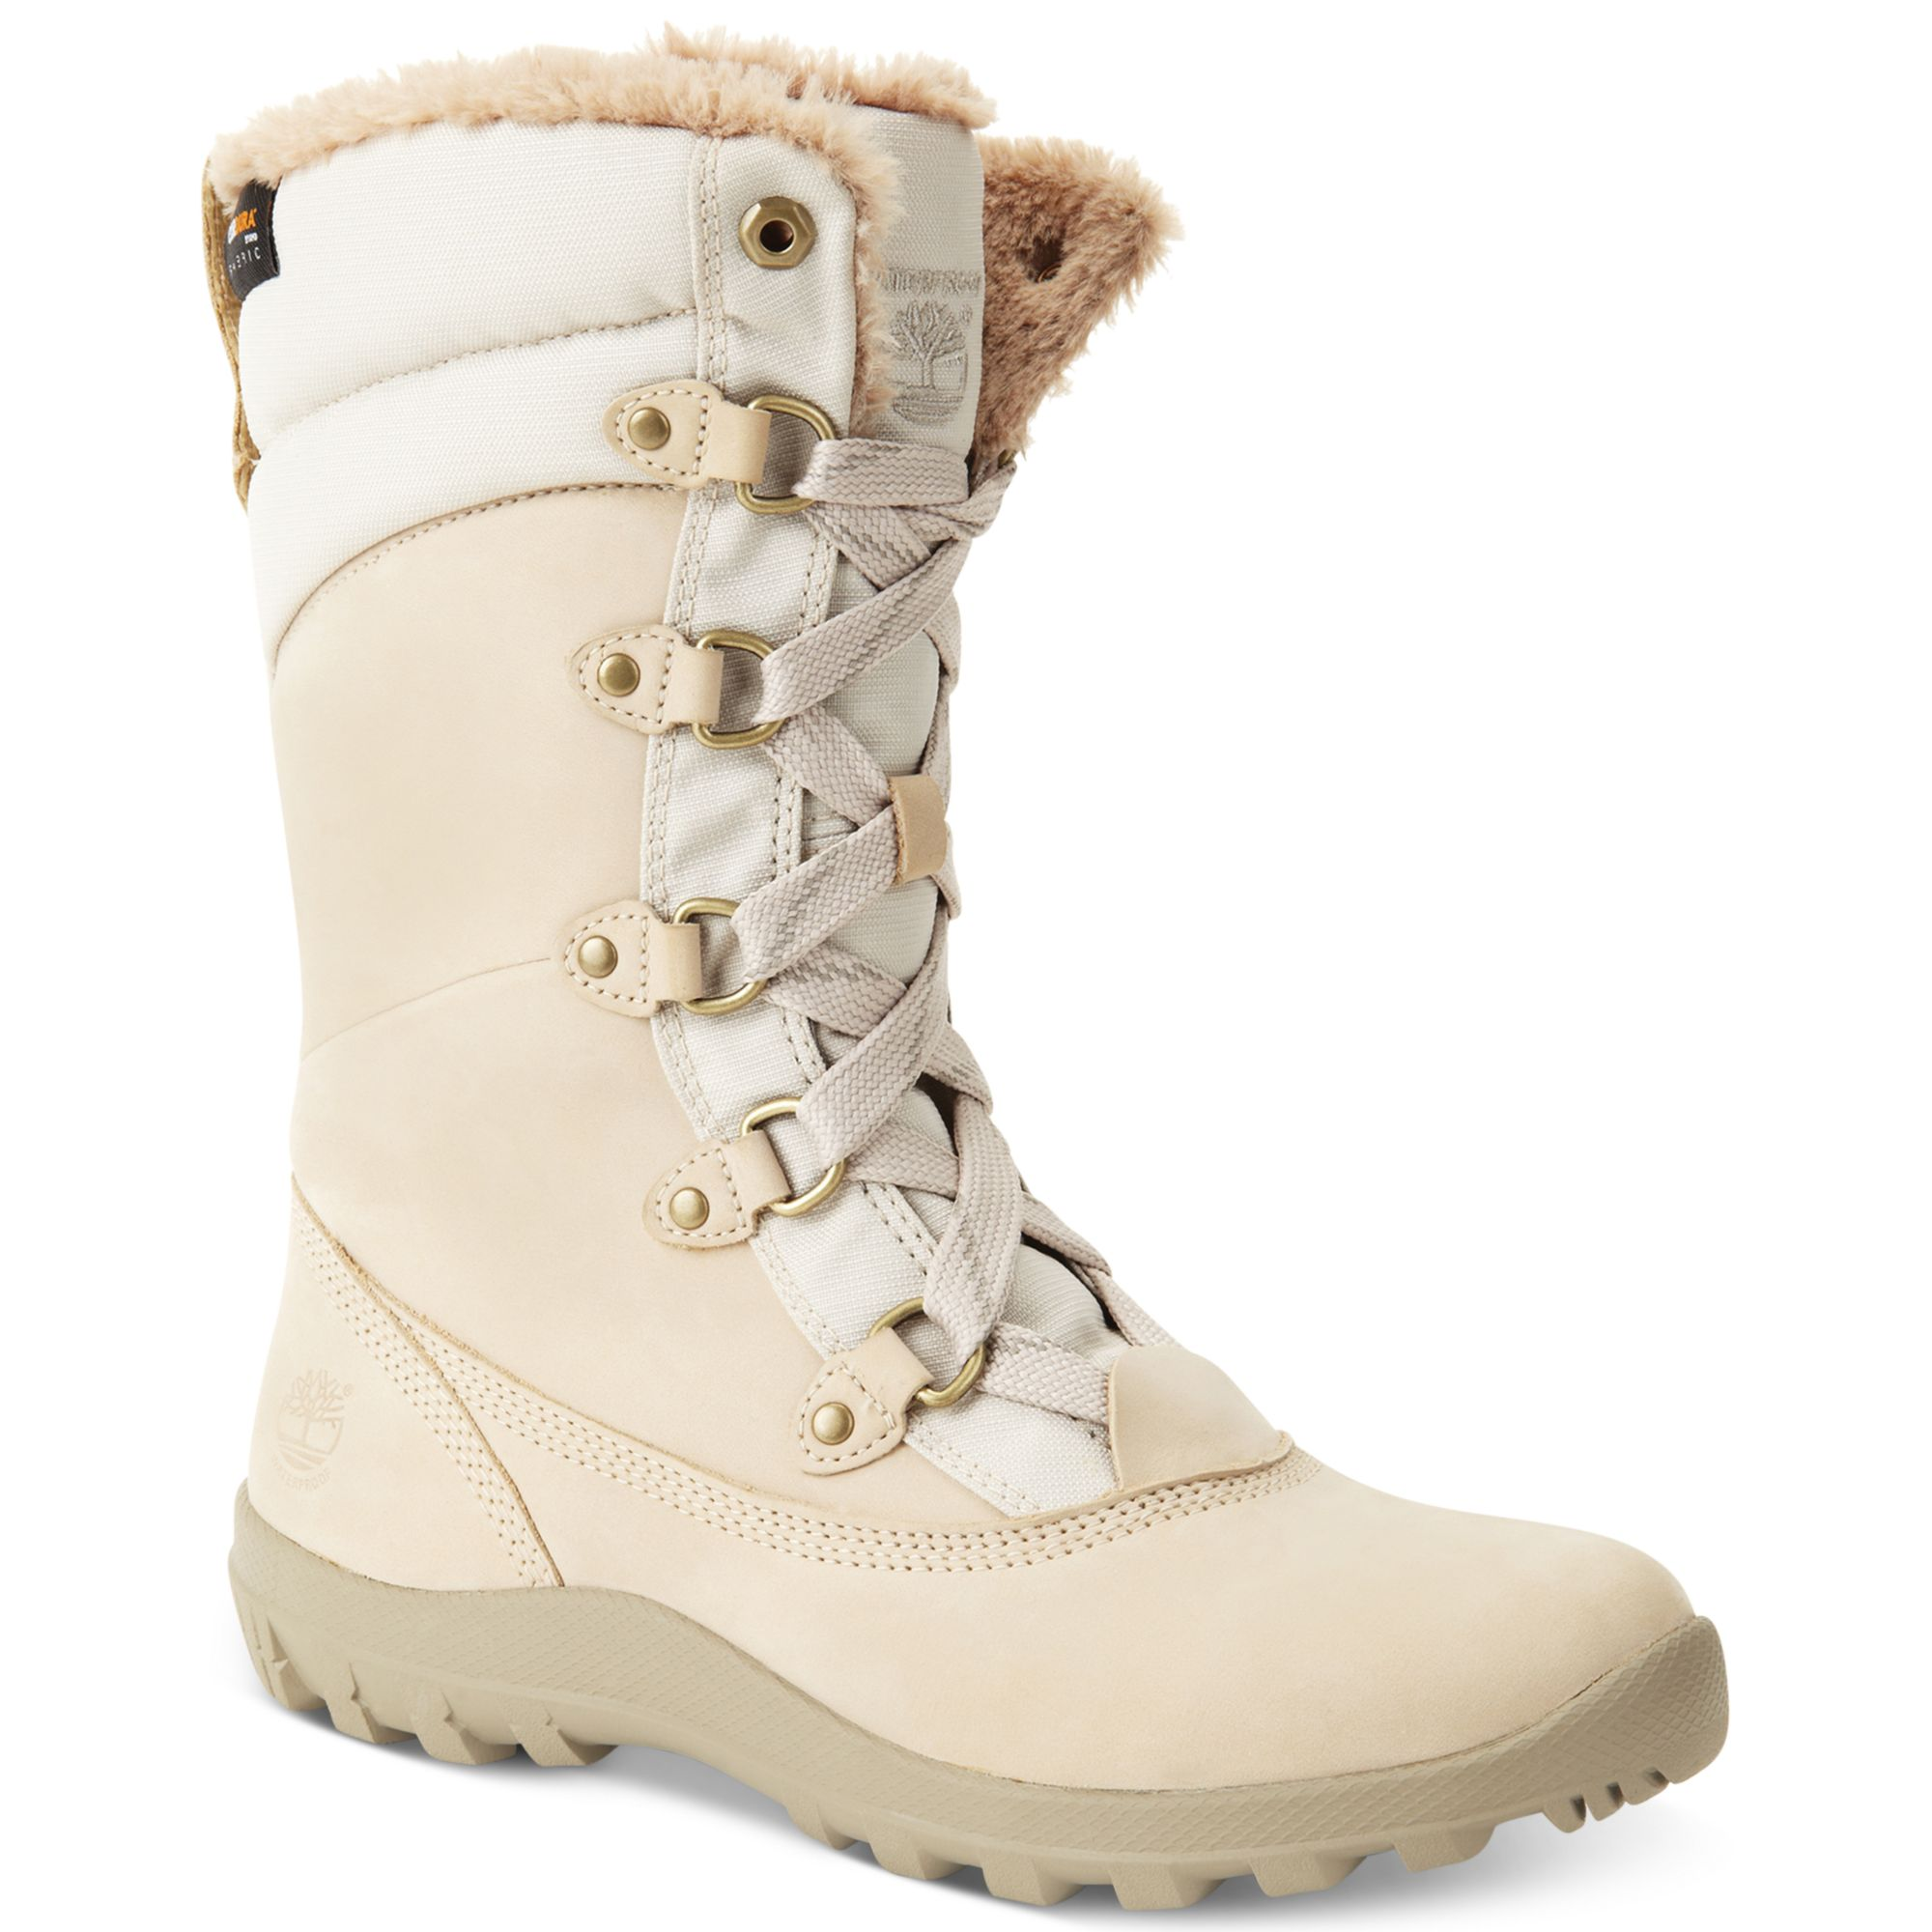 8cd5d0d2dd5 Timberland Natural Mount Hope Snow Boots